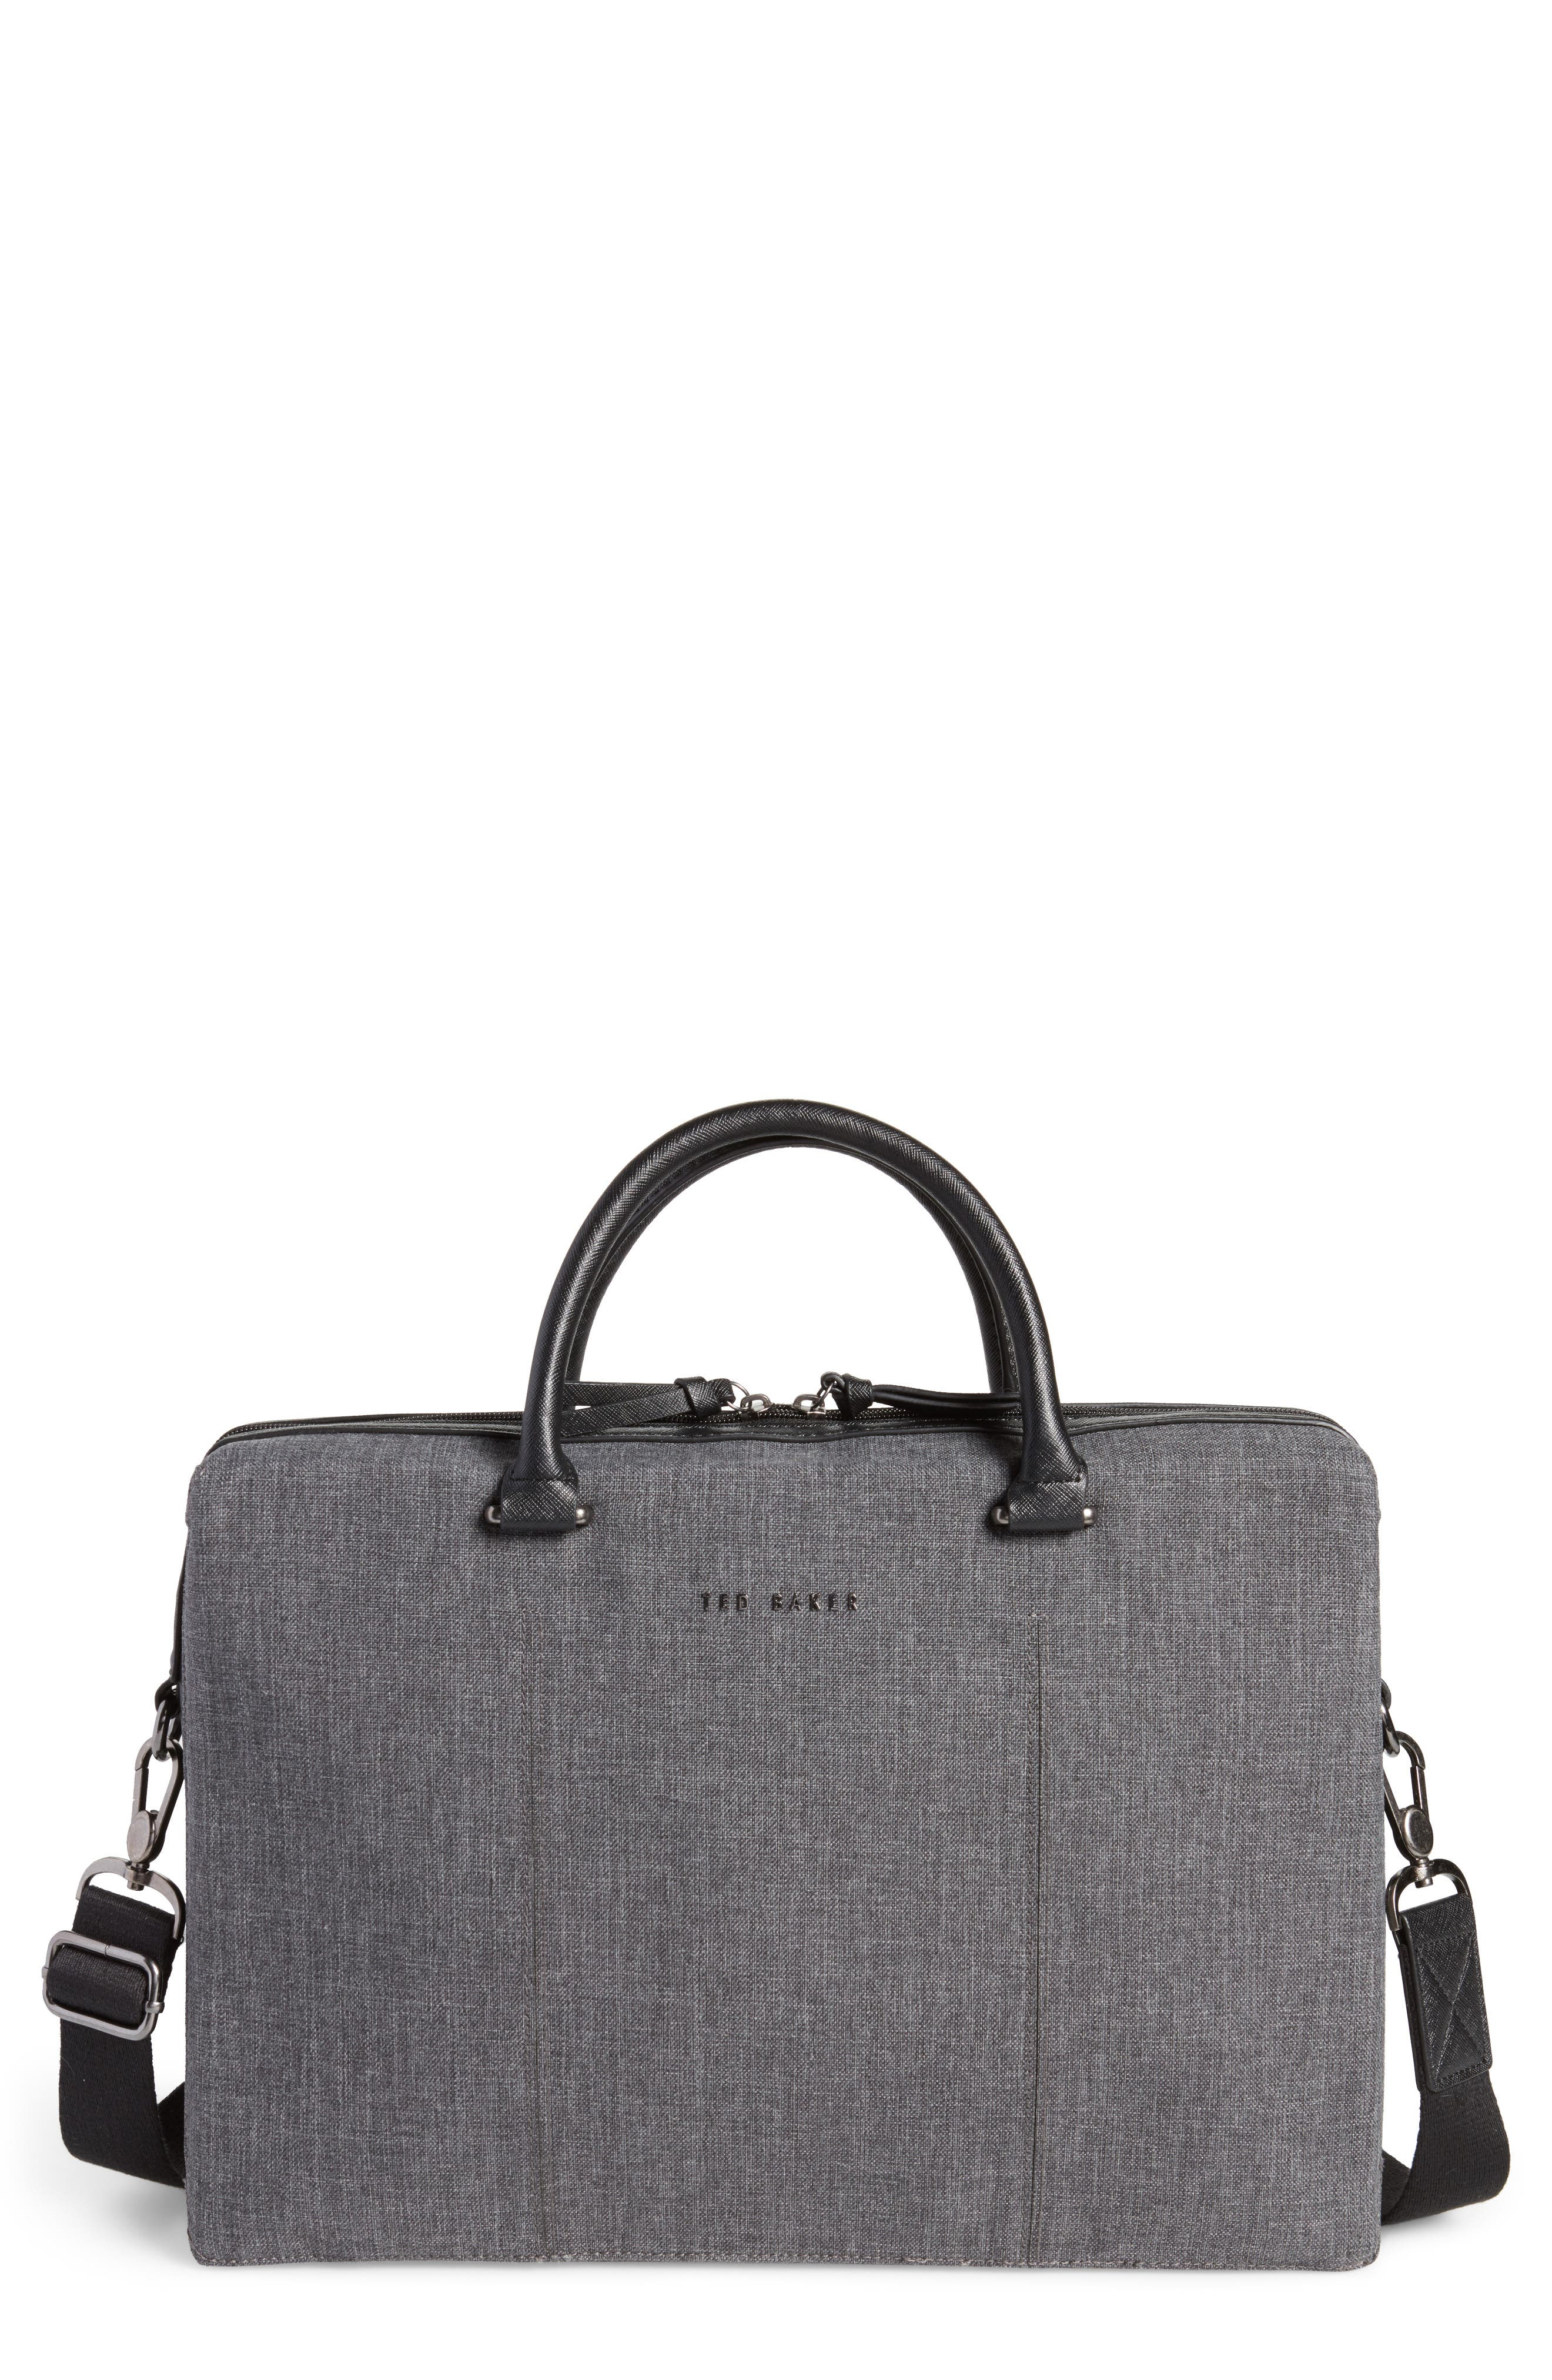 TED BAKER LONDON Citrice Document Briefcase, Main, color, CHARCOAL